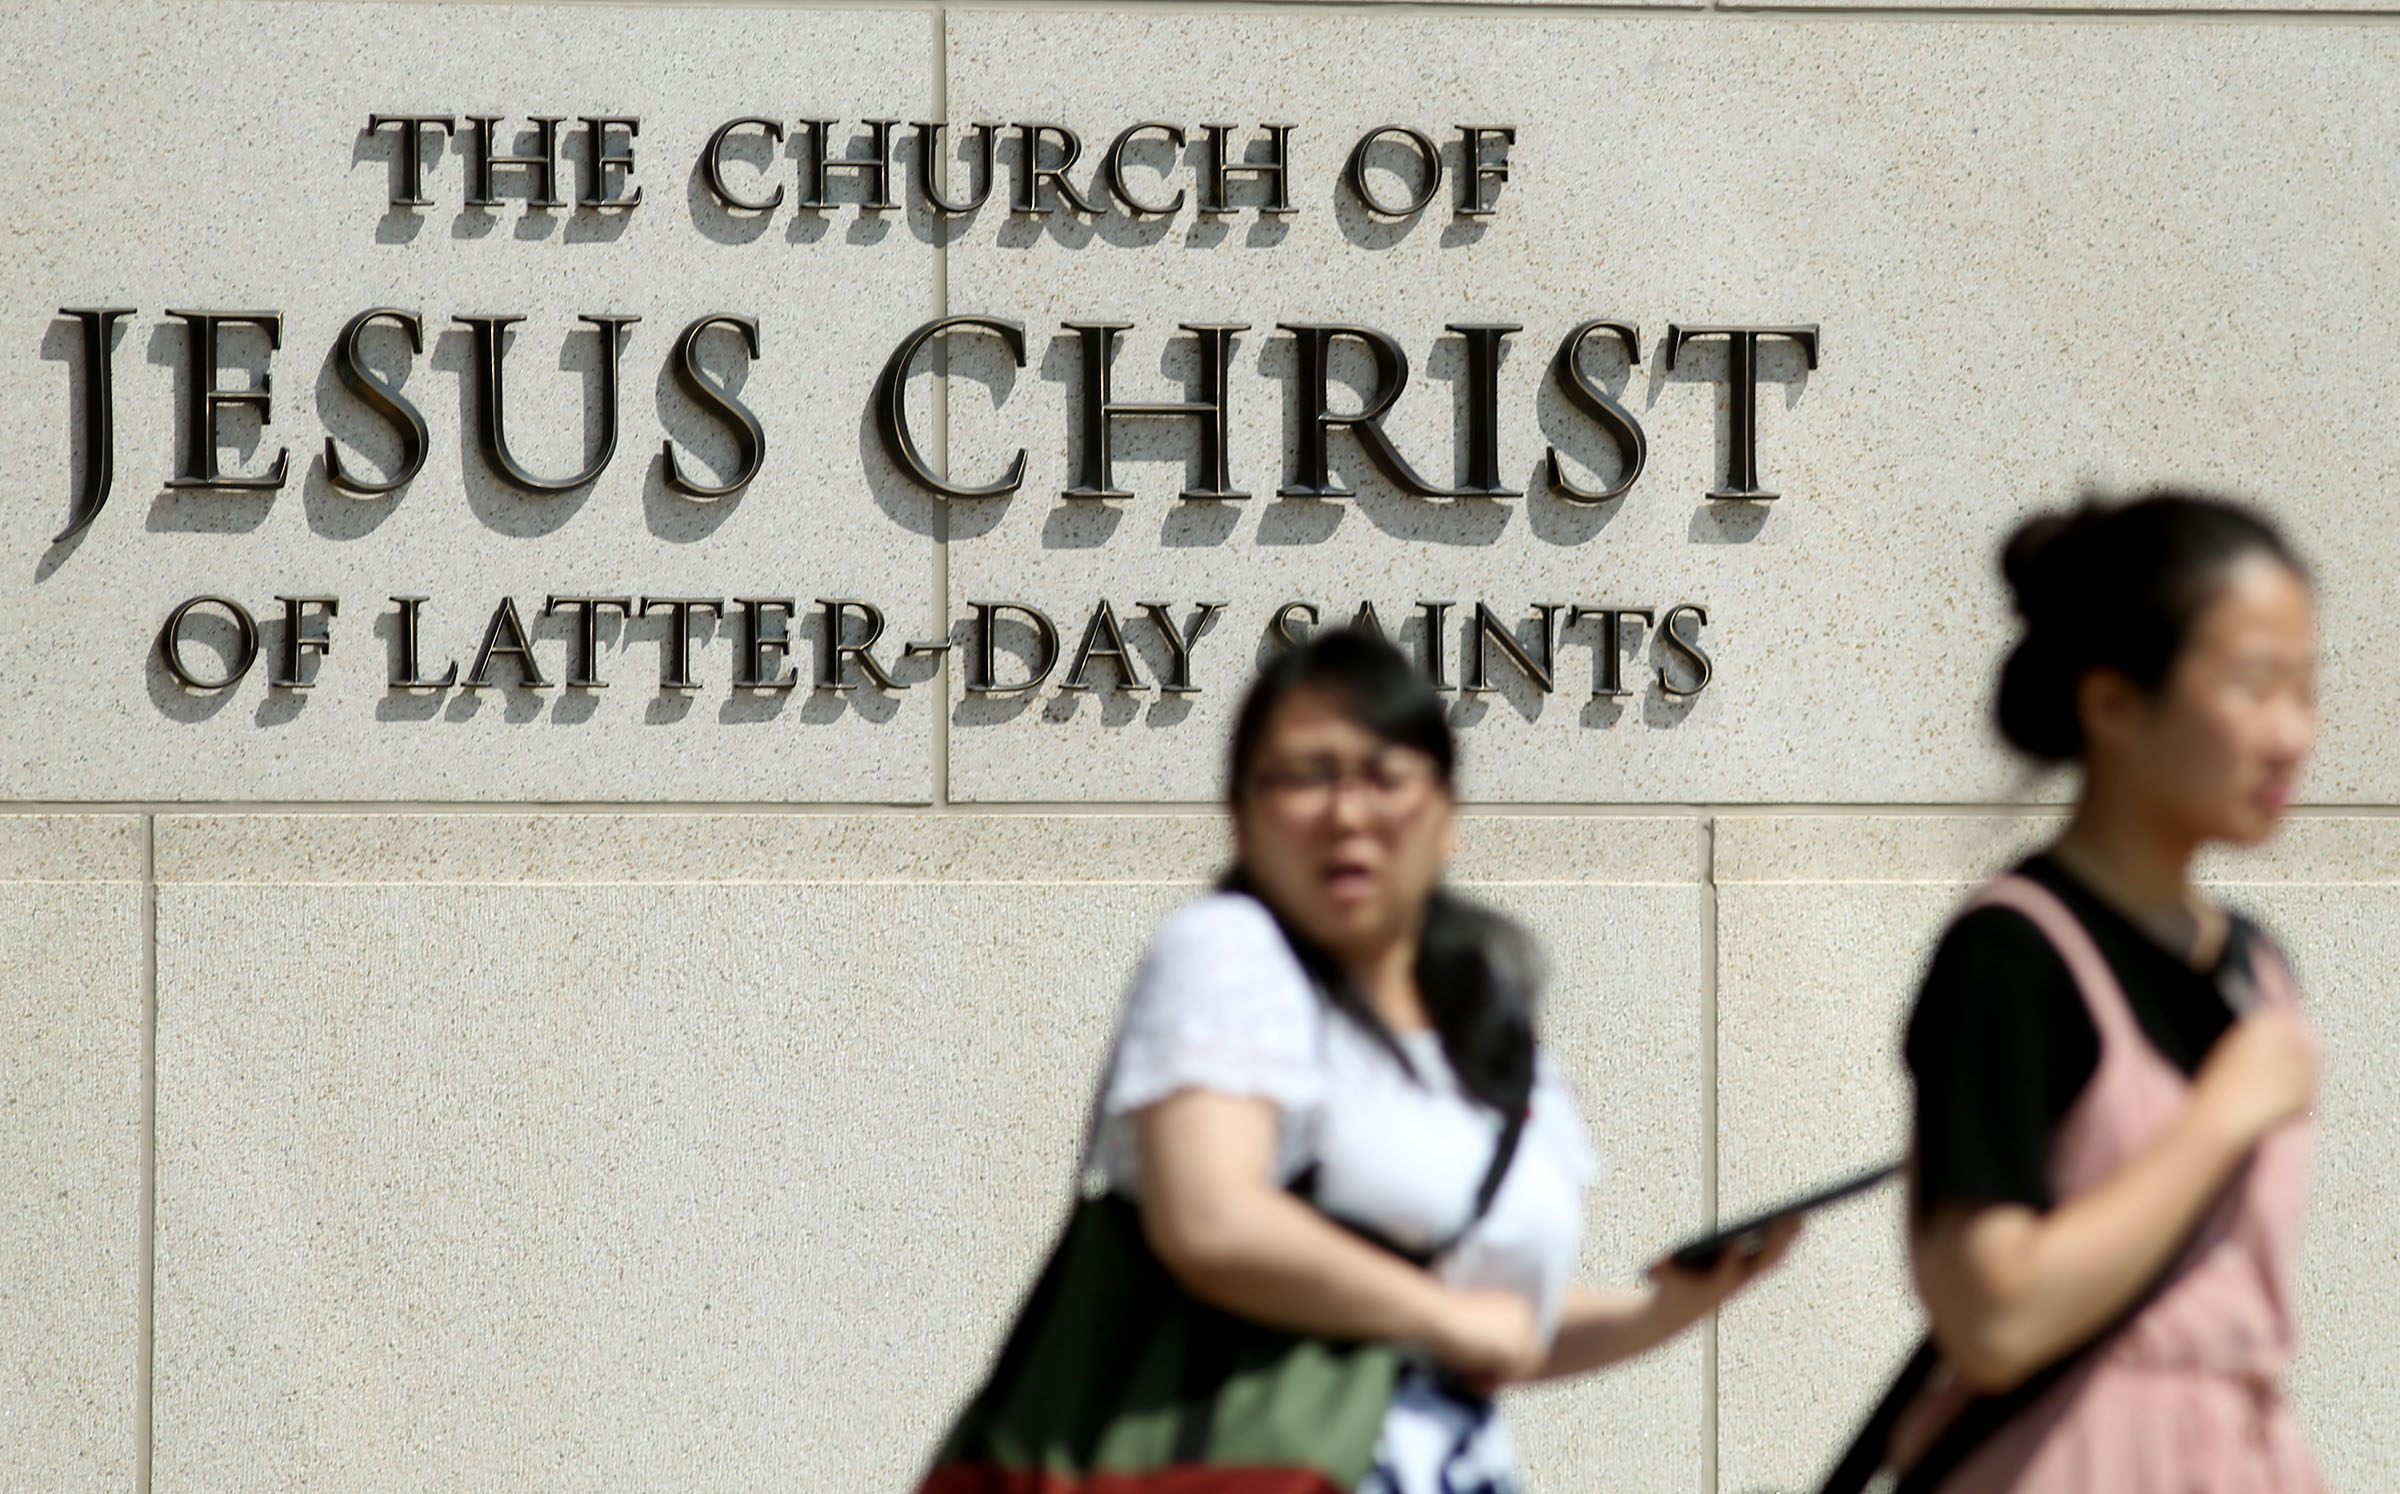 """Pedestrians walk past the Church History Building in Salt Lake City on Thursday, August 16, 2018. The Church of Jesus Christ of Latter-day Saints has issued new name guidelines, dropping the term """"Mormon"""" in most uses."""